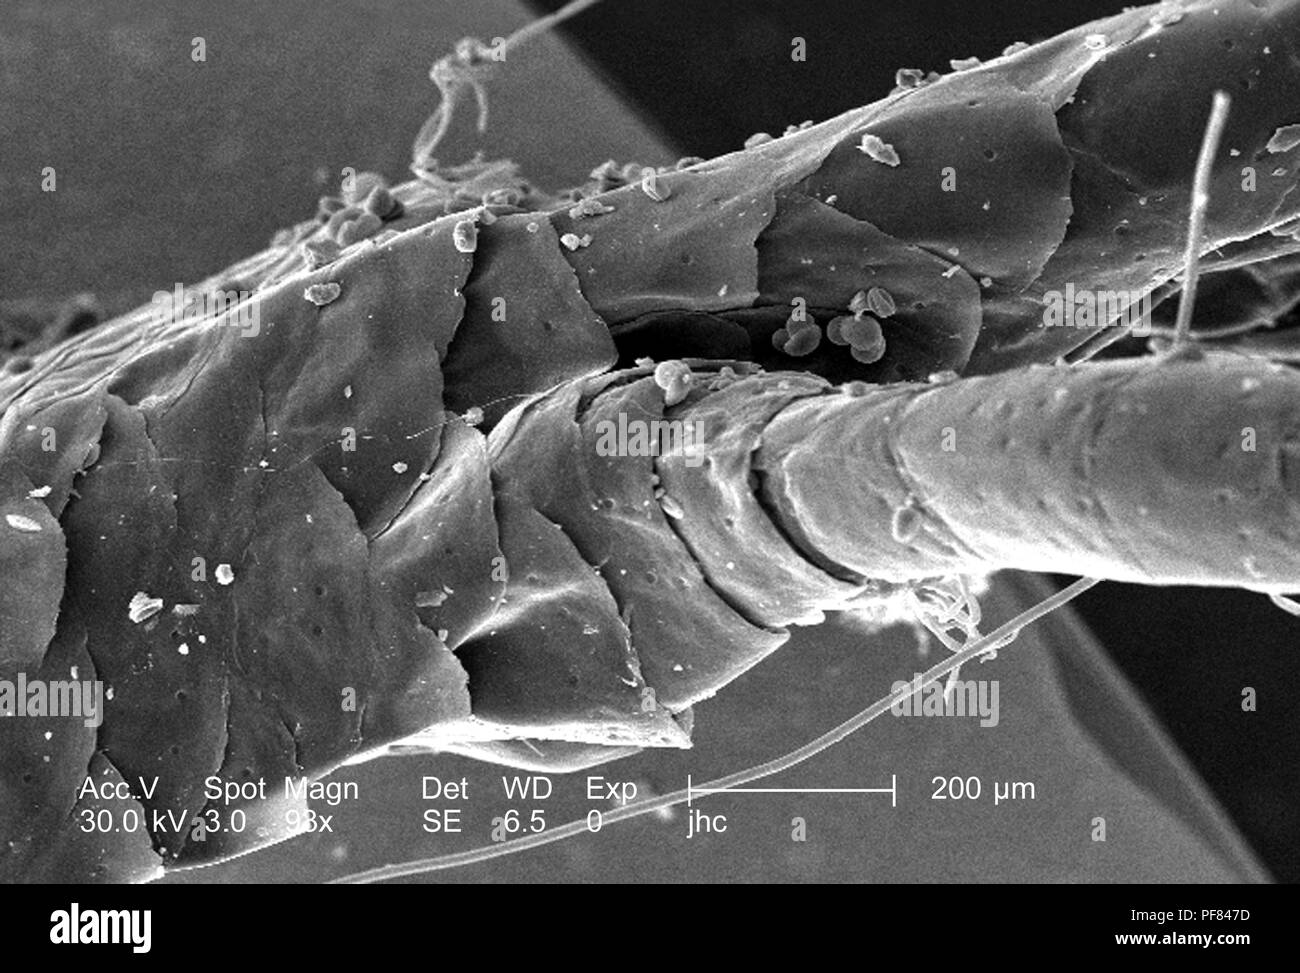 Morphologic features of a deceased lizard's foot found in Decatur, Georgia, revealed in the 98x magnified scanning electron microscopic (SEM) image, 2006. Image courtesy Centers for Disease Control (CDC) / William L. Nicholson, Ph.D. Cal Welbourn, Ph.D. Gary R. Mullen. () Stock Photo